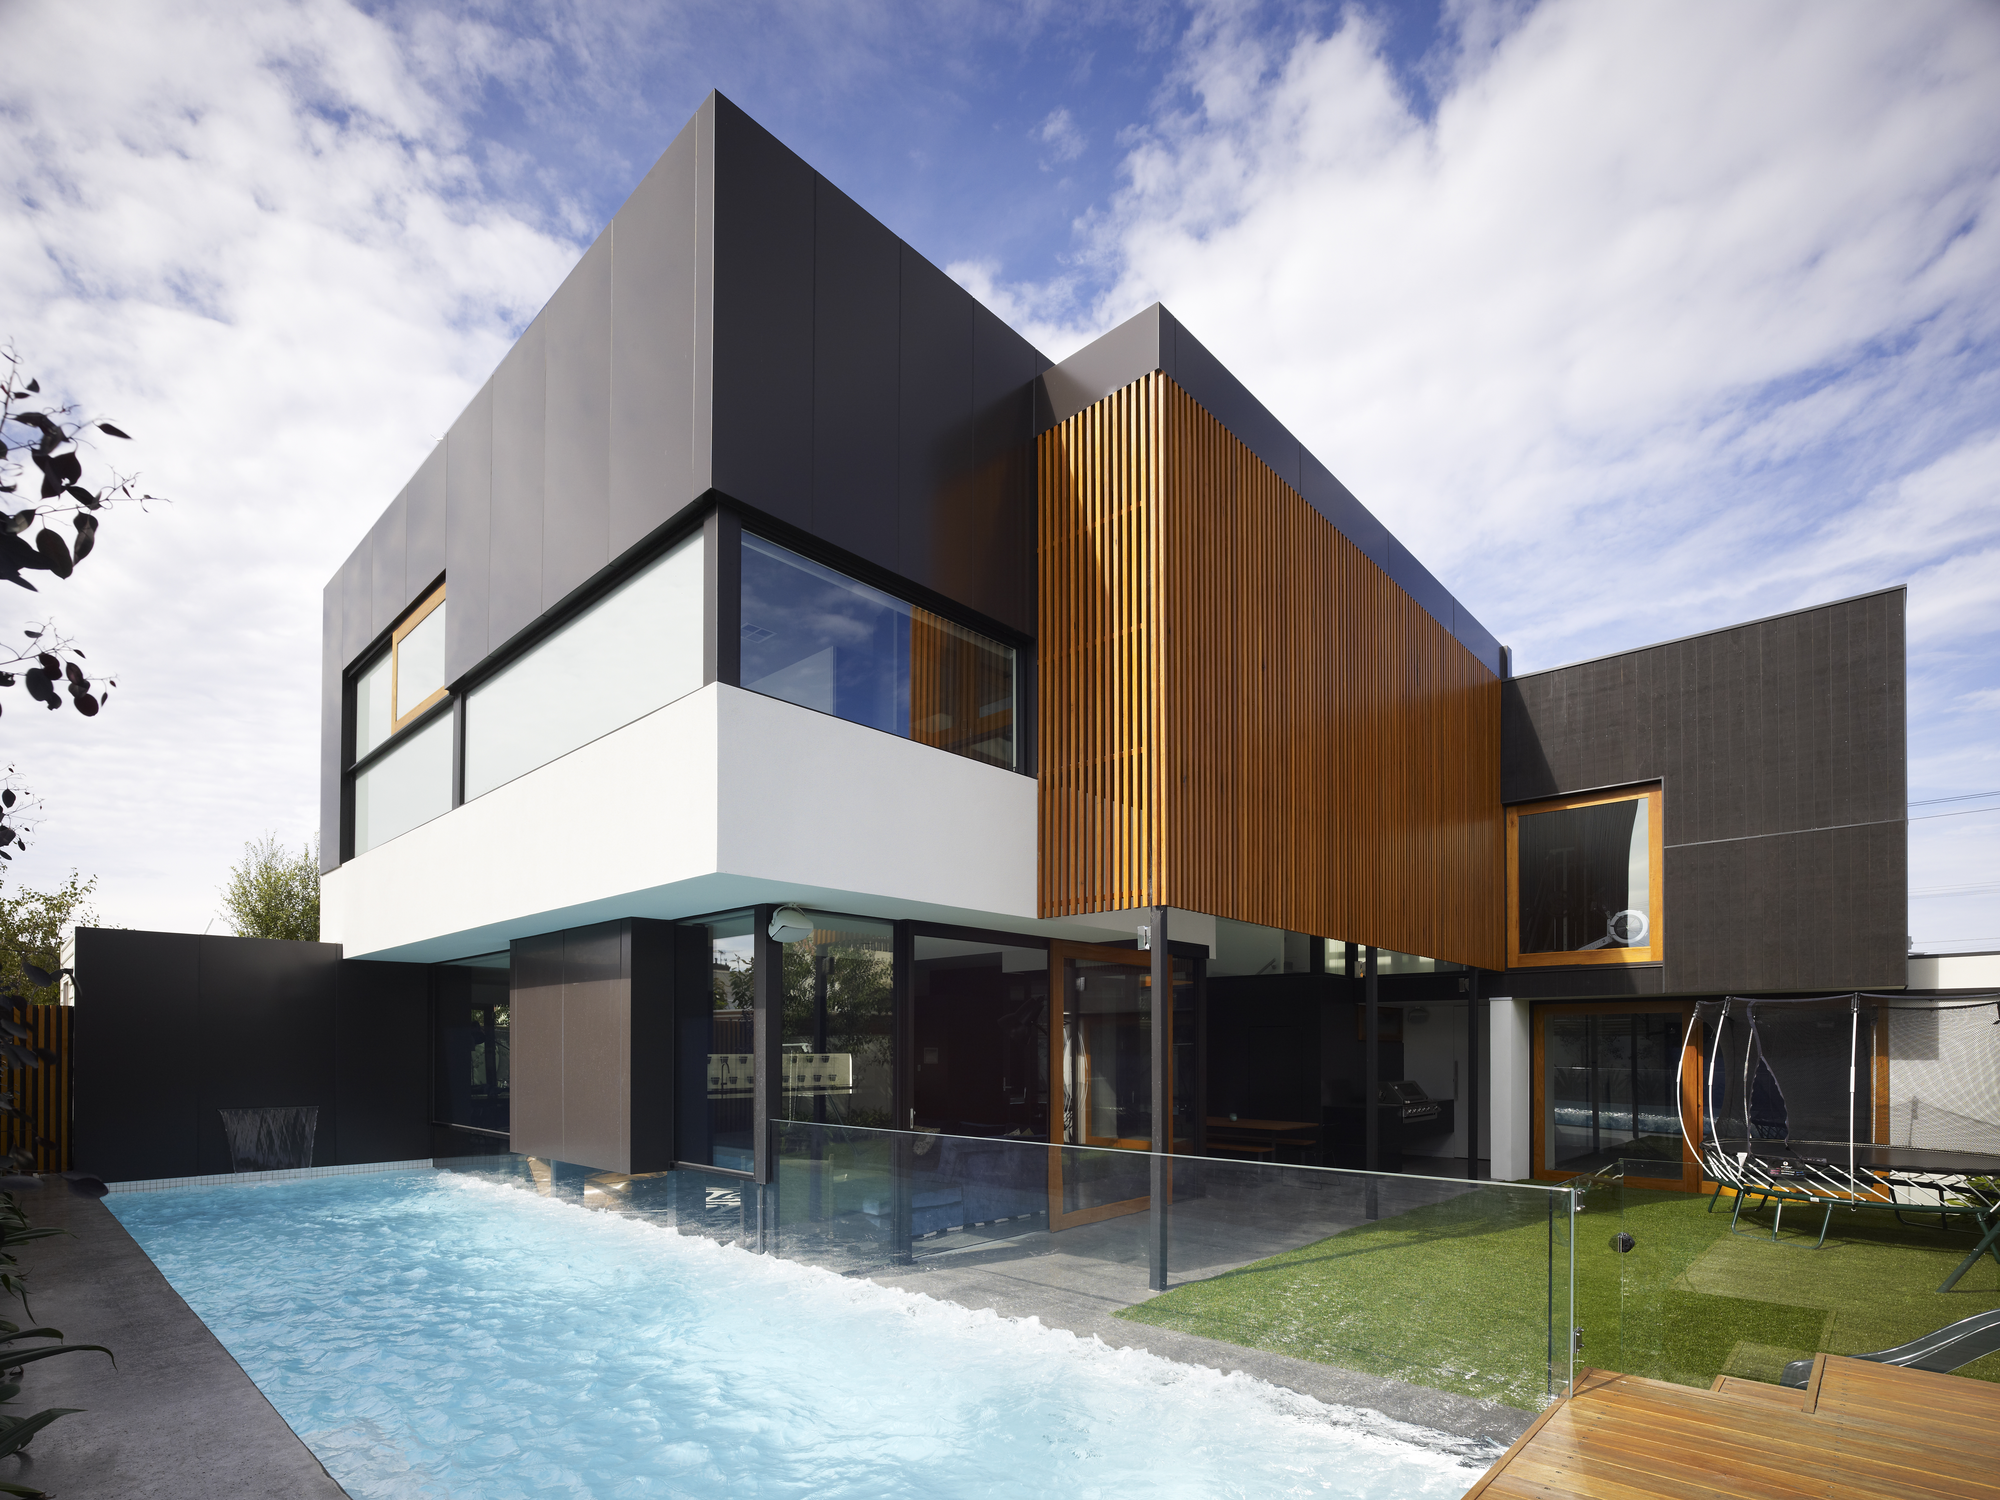 Hope Street Geelong West / Steve Domoney Architecture, © Derek Swalwell